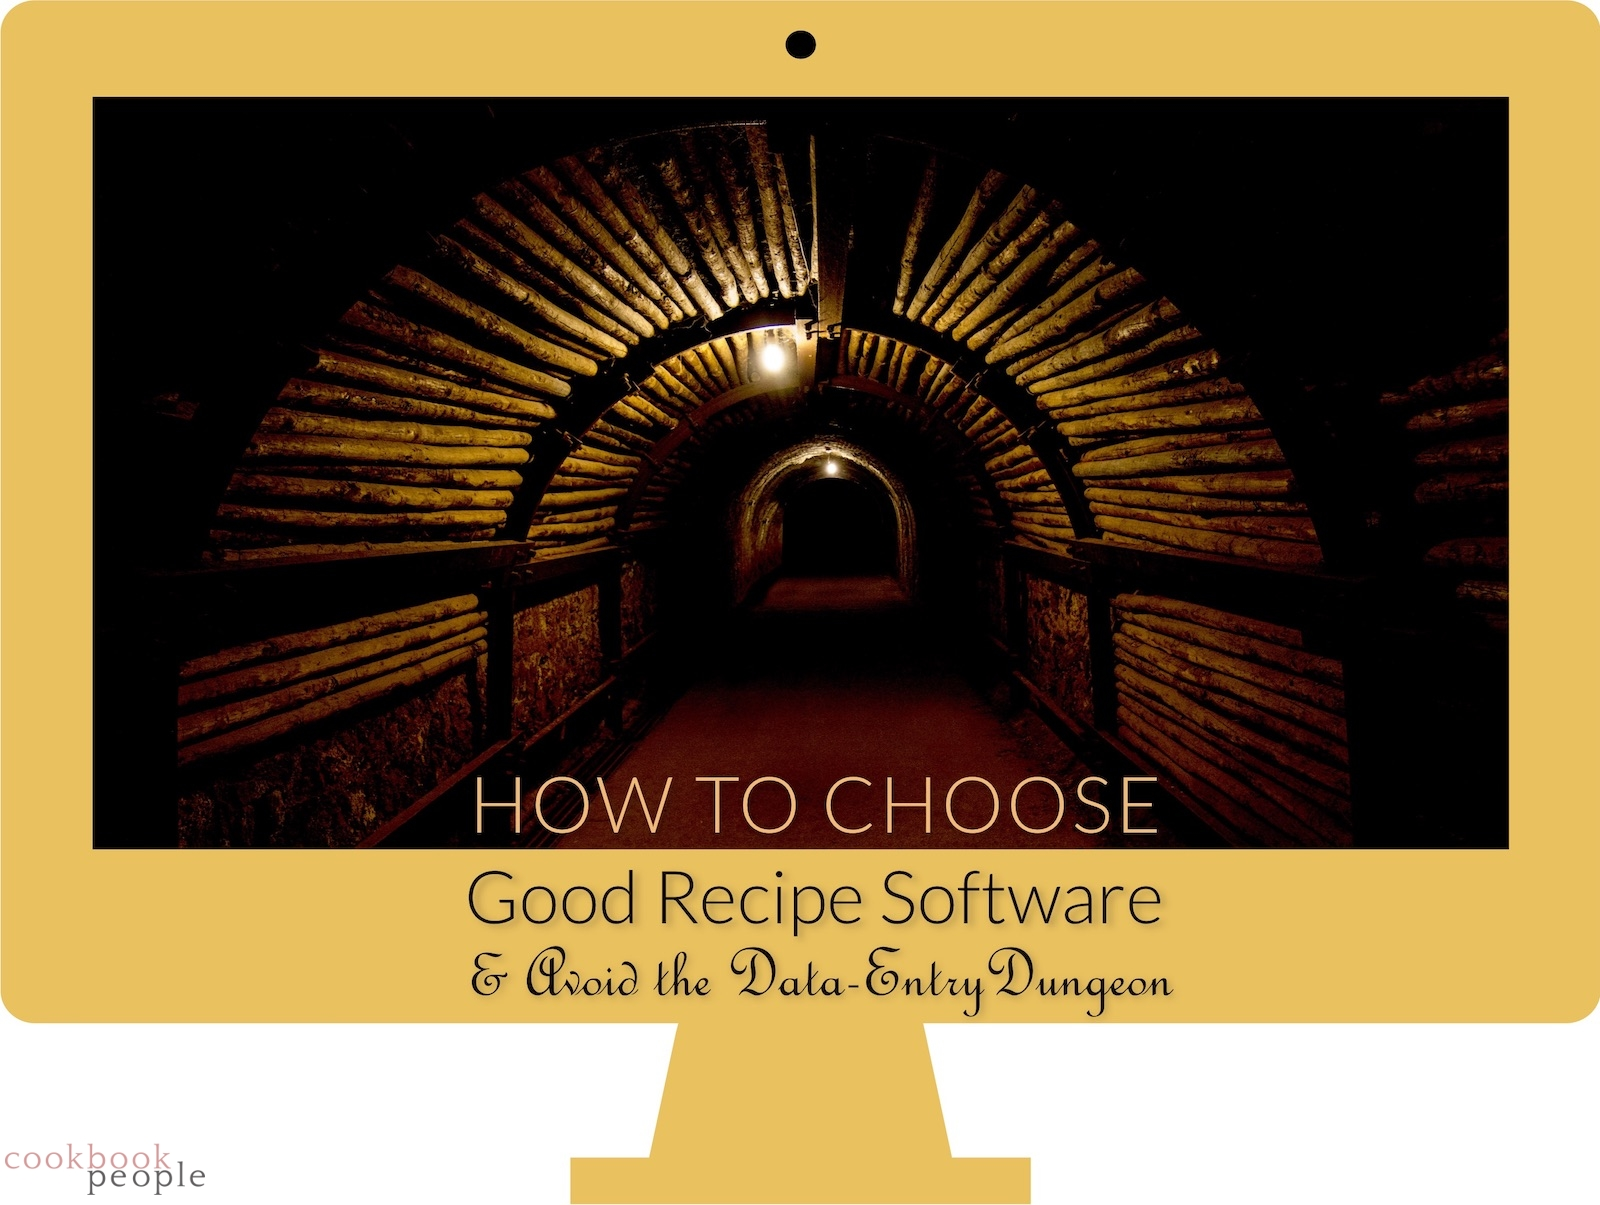 computer showing dark tunnel with title: How to Choose Good Recipe Software & Avoid the Data-Entry Dungeon